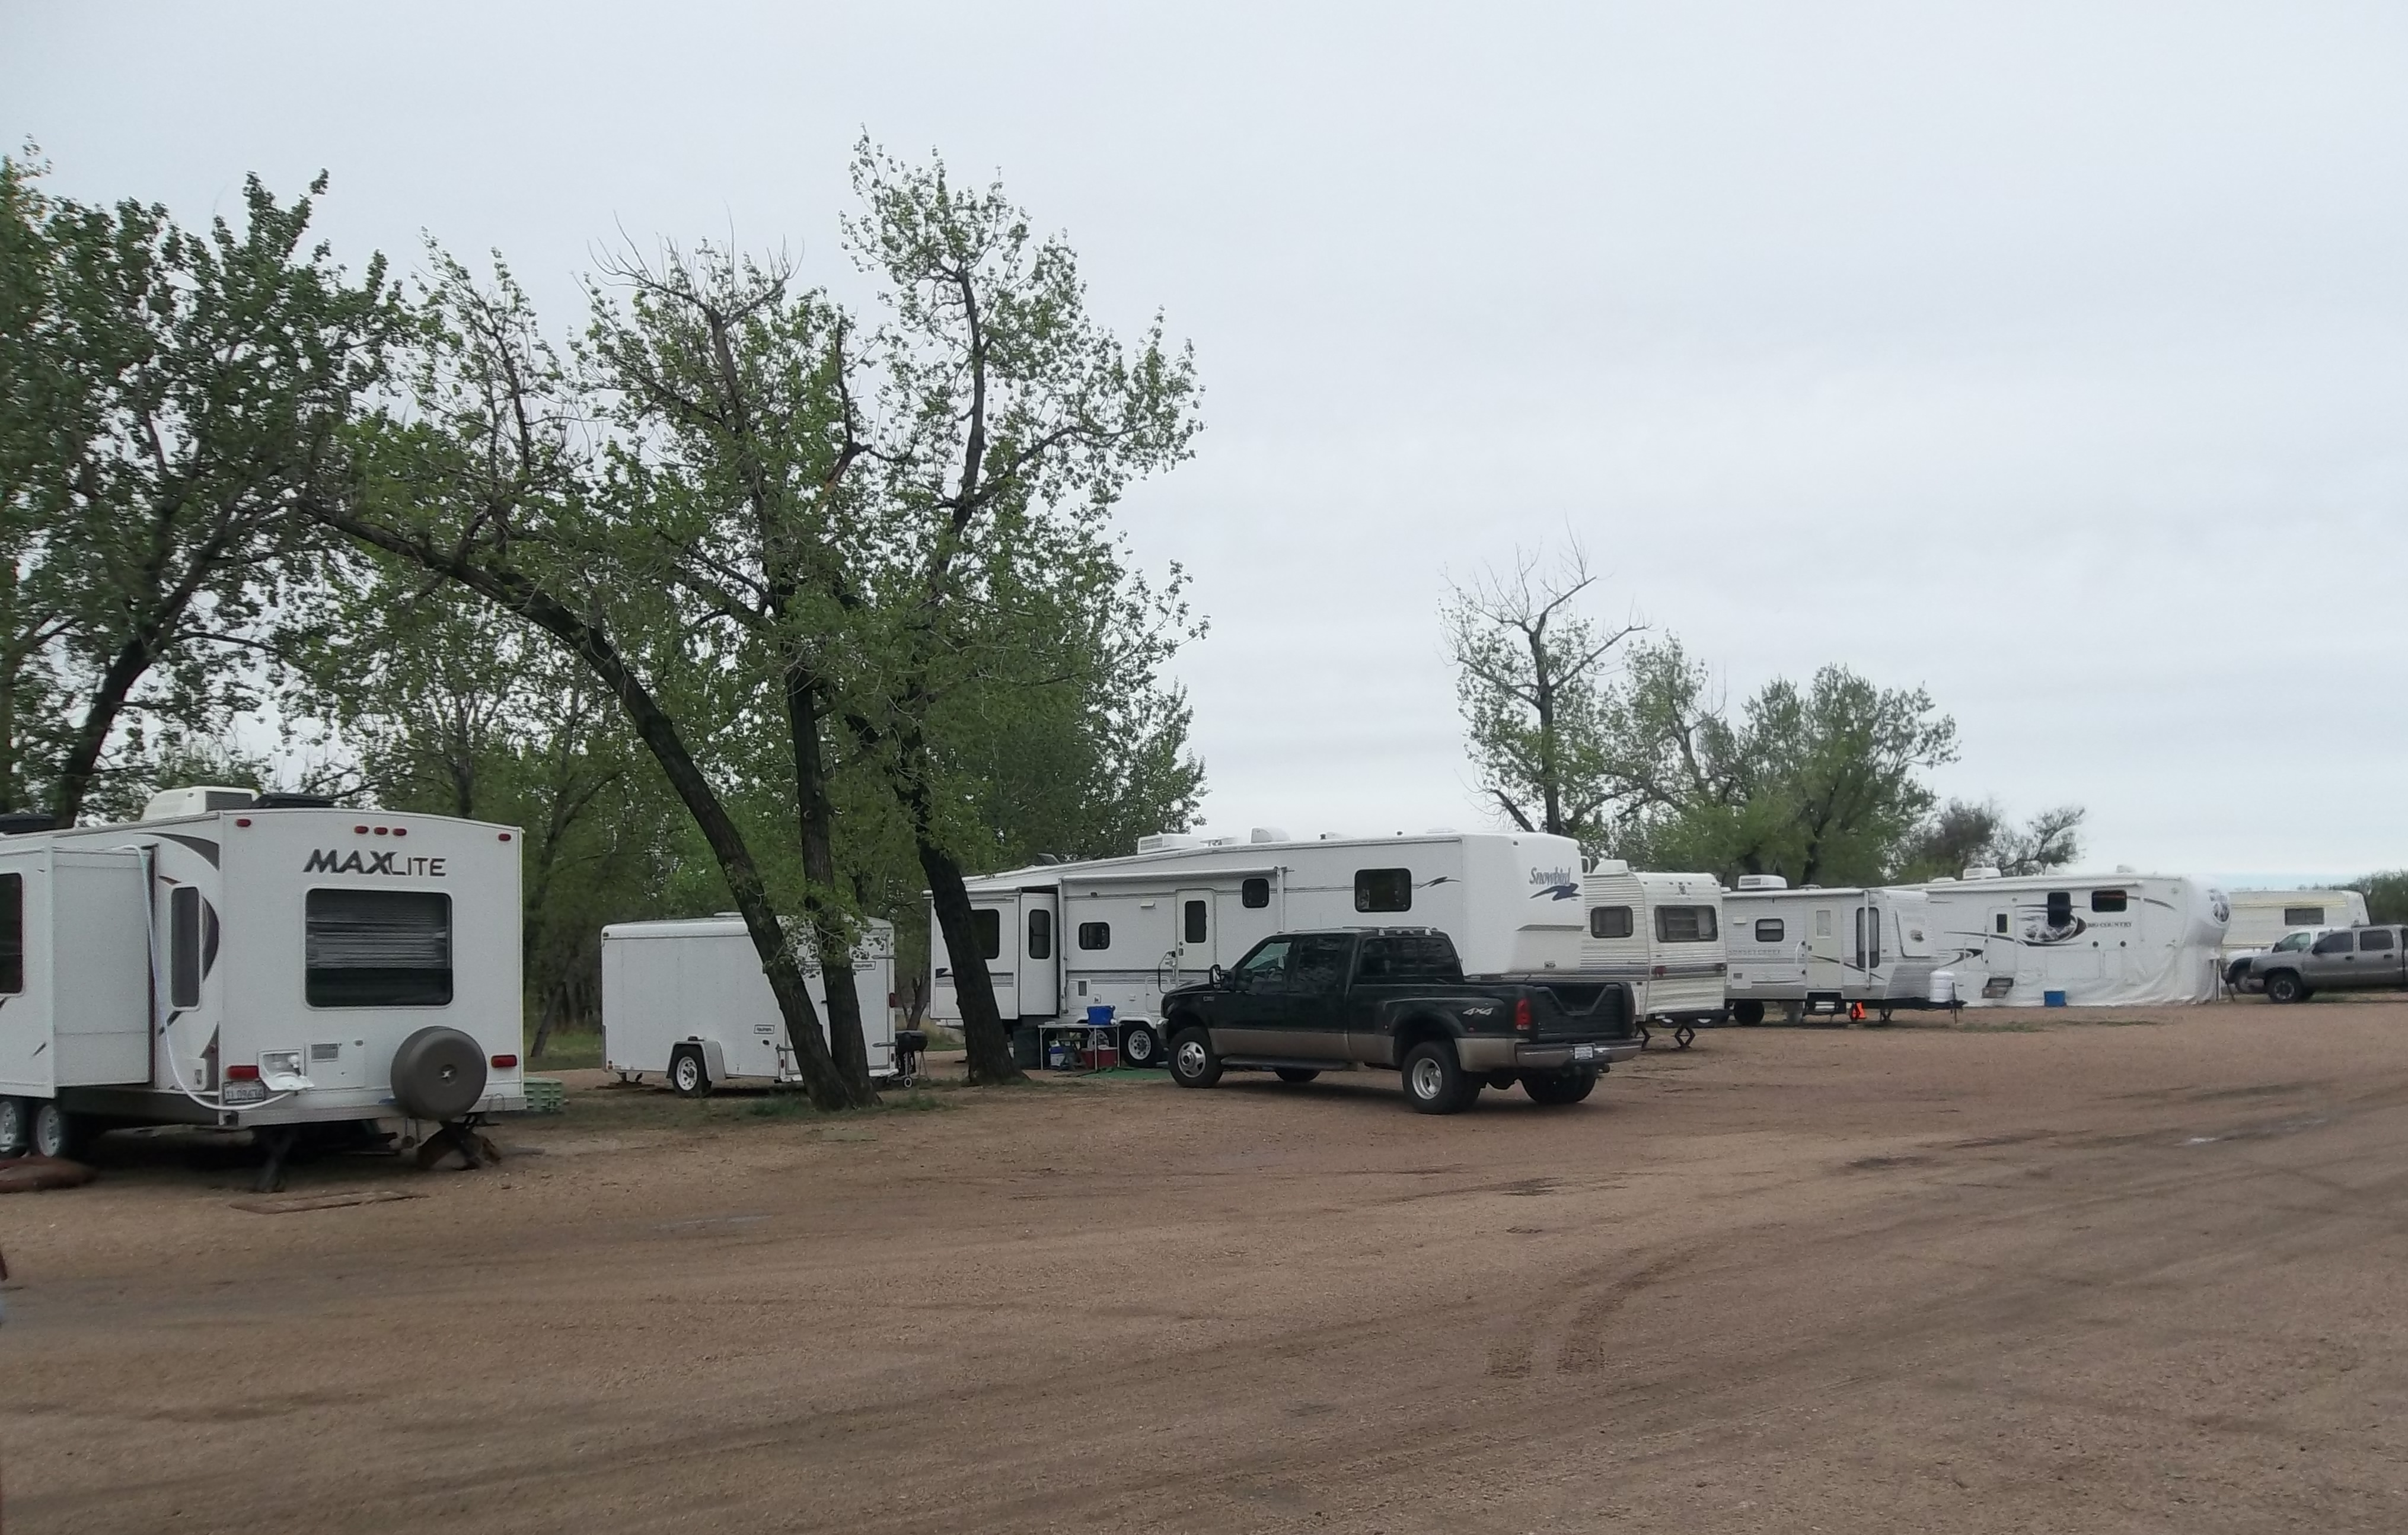 Silver Spur Campground image 4